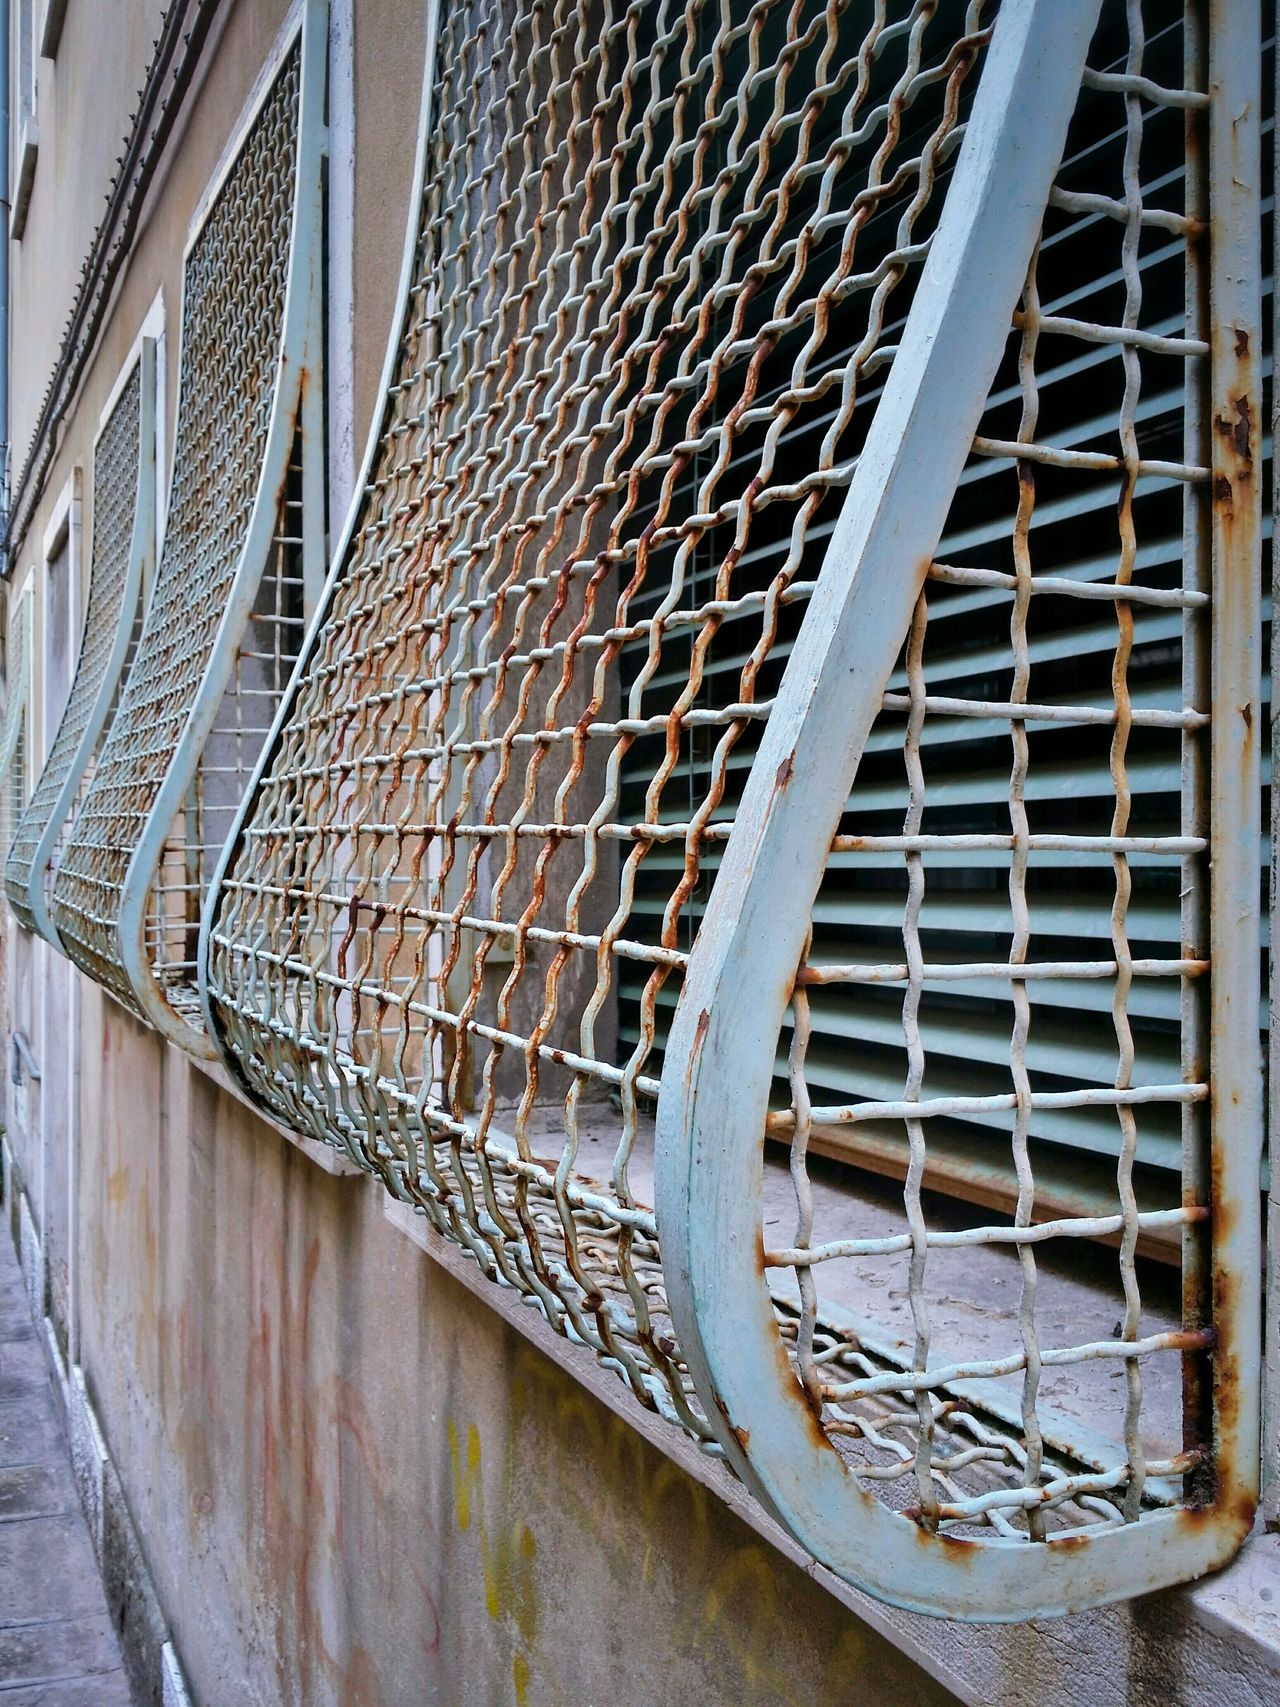 Window Grids Venetian Blinds Window Patterns Venice Veneto Italy Travel Photography Travel Traveling Converging Lines Steel Wire Grids